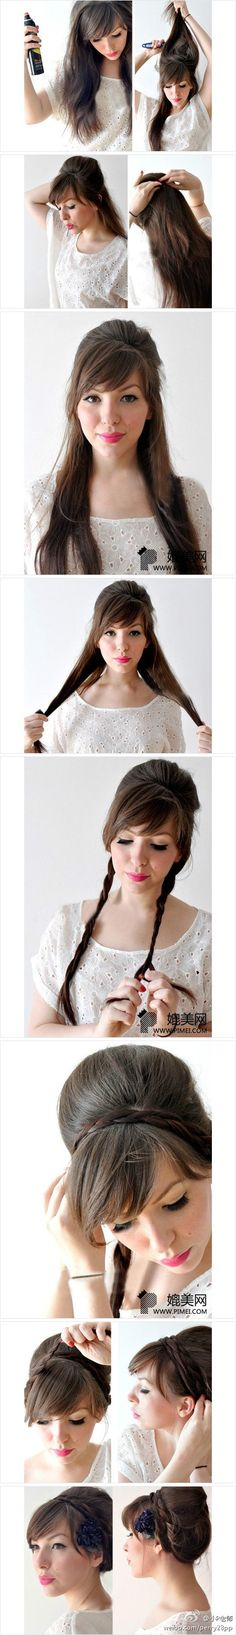 DIY Easy Pretty Up Do Hairstyle With Your Hair | hairstyles tutorial